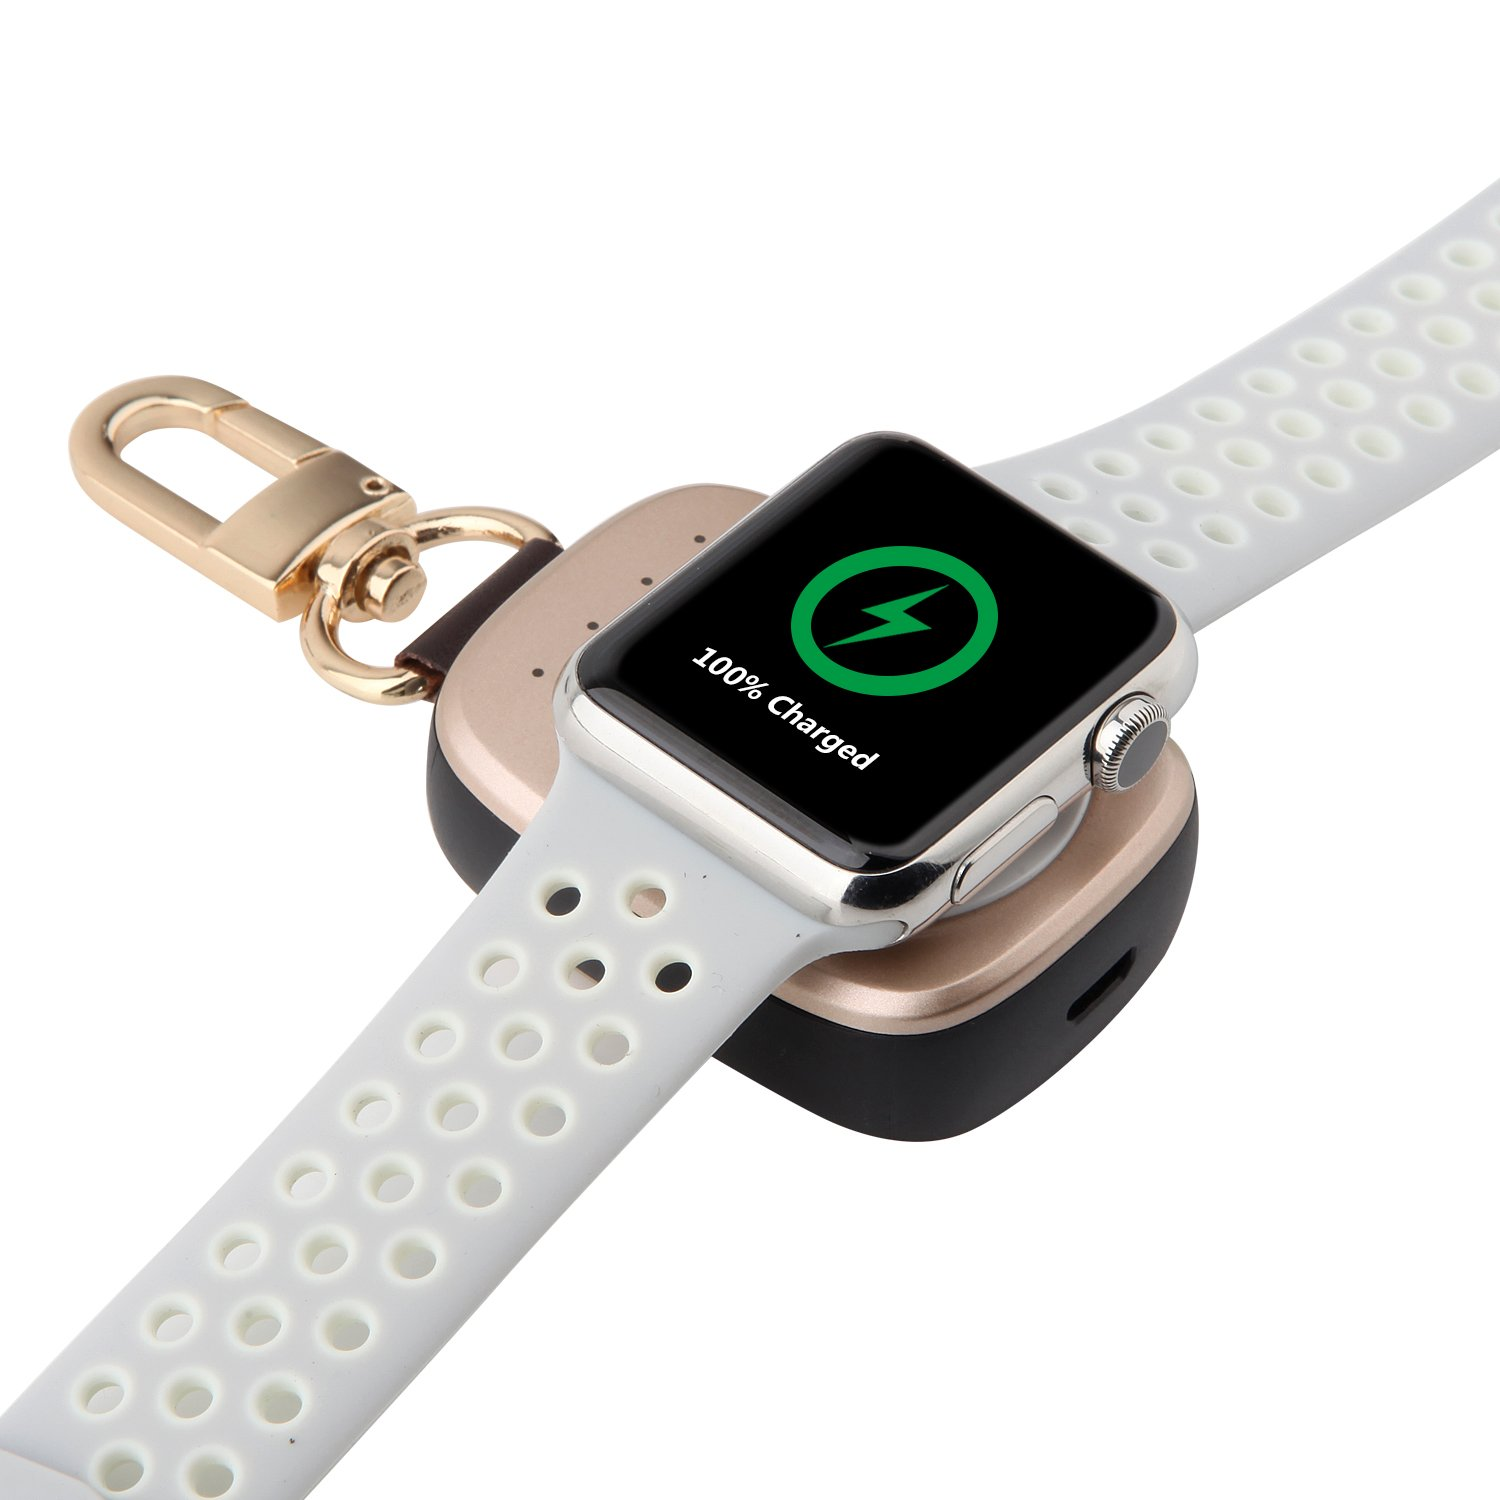 For Apple Watch Charger, VODKE Portable Wireless Apple Watch Magnetic Charging Stand for Apple iWatch Series 3 / series 2 / Series 1 / 42mm / 38mm Rose-gold